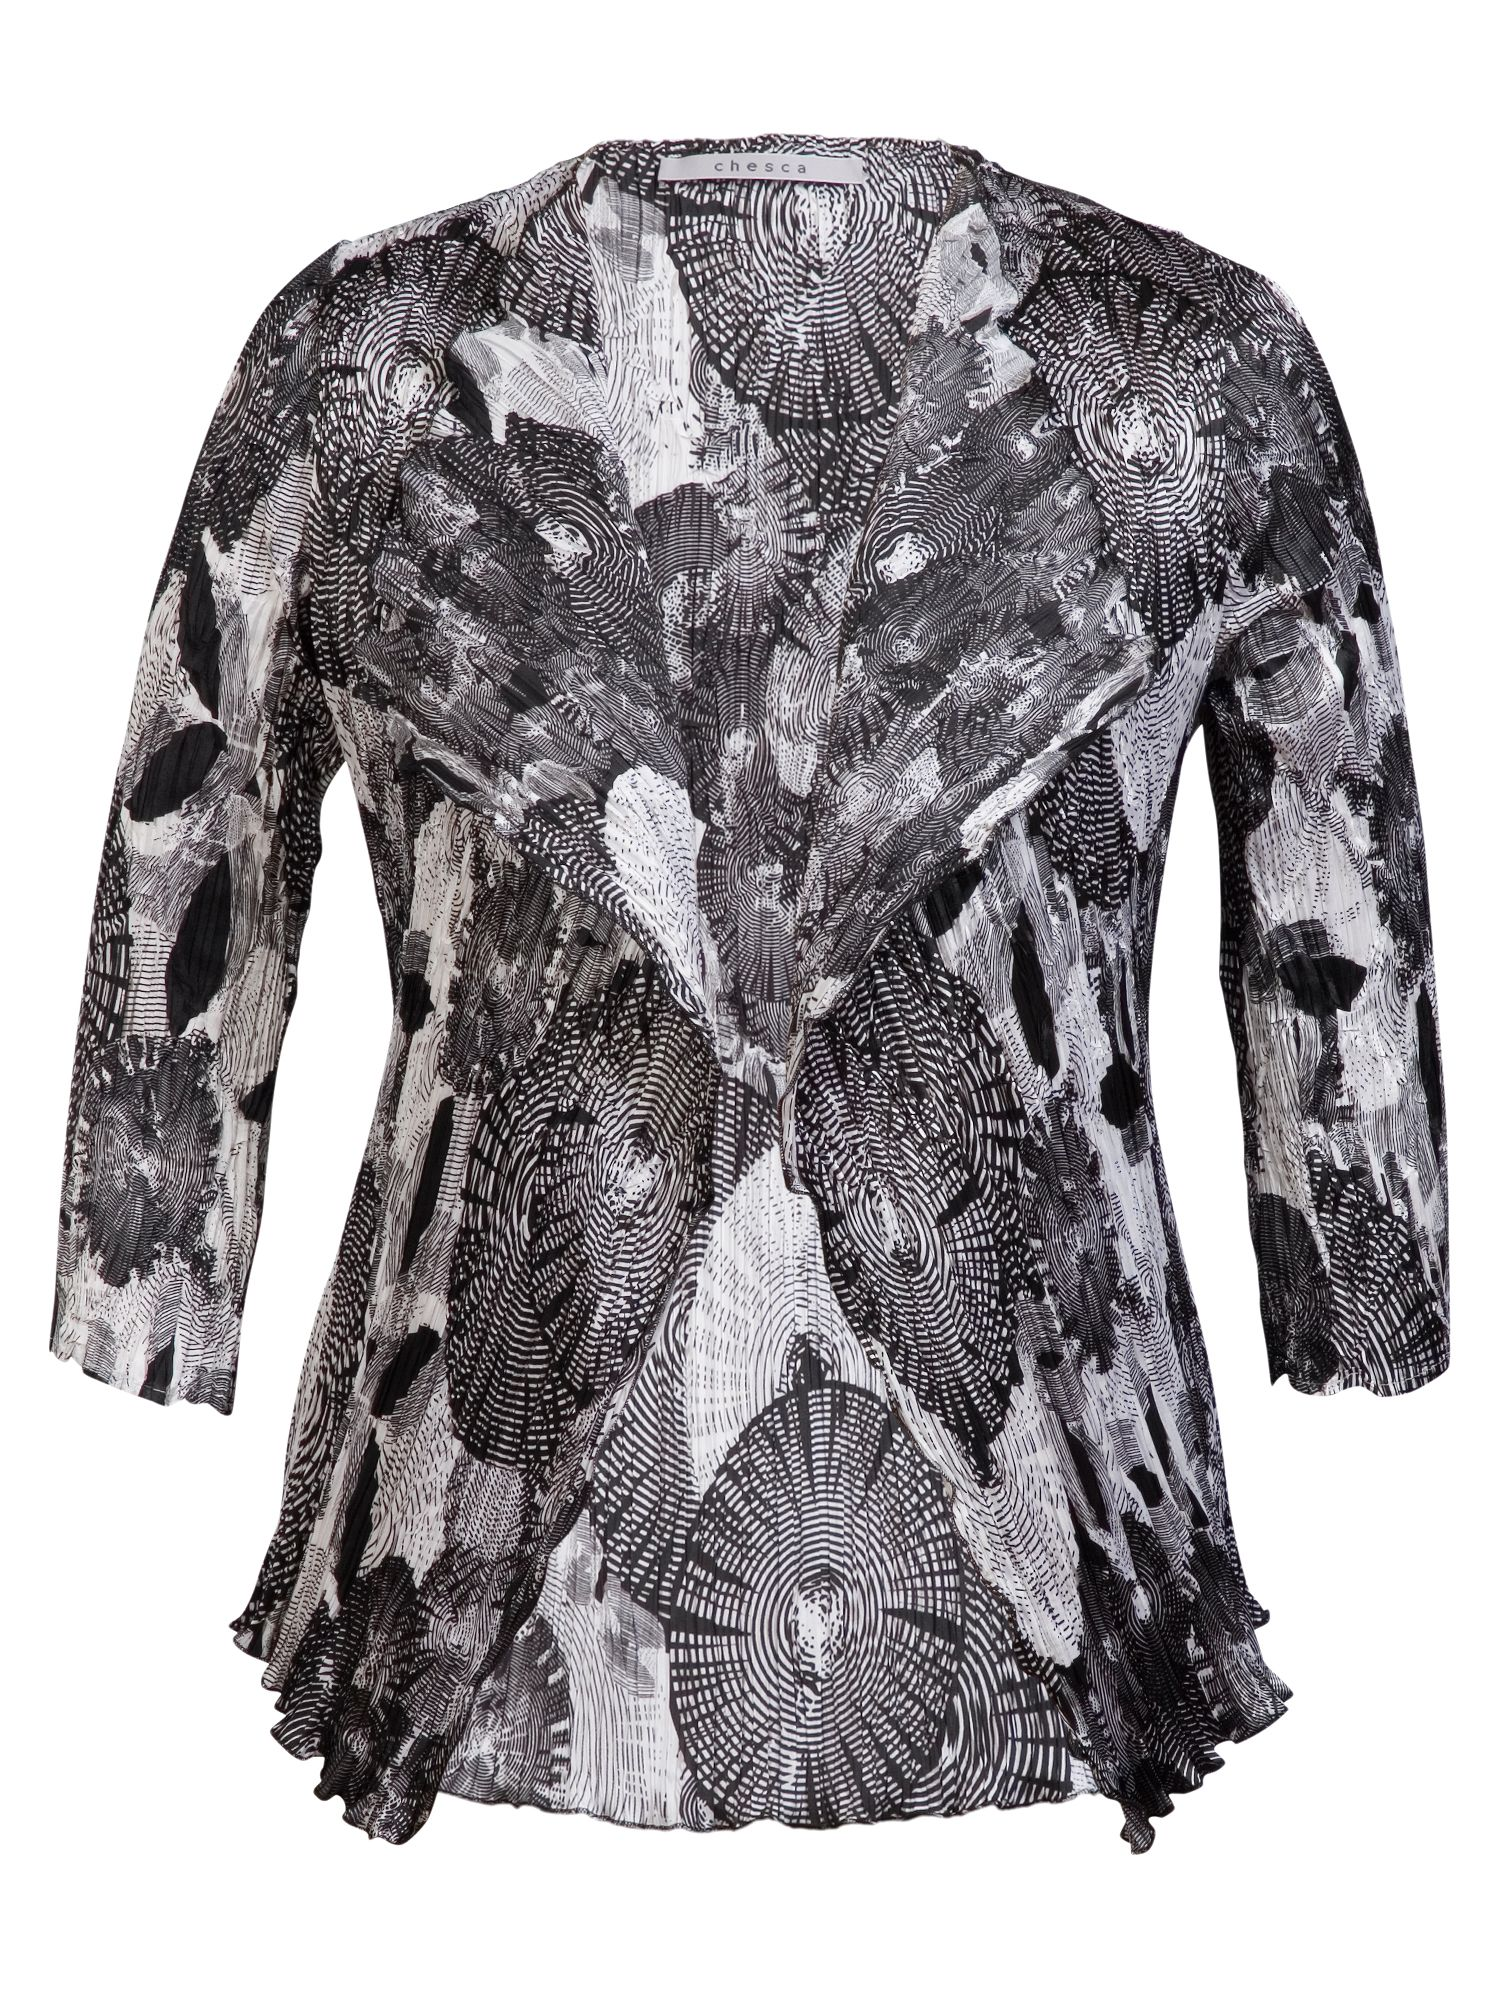 Abstract print sateen crush pleat shrug